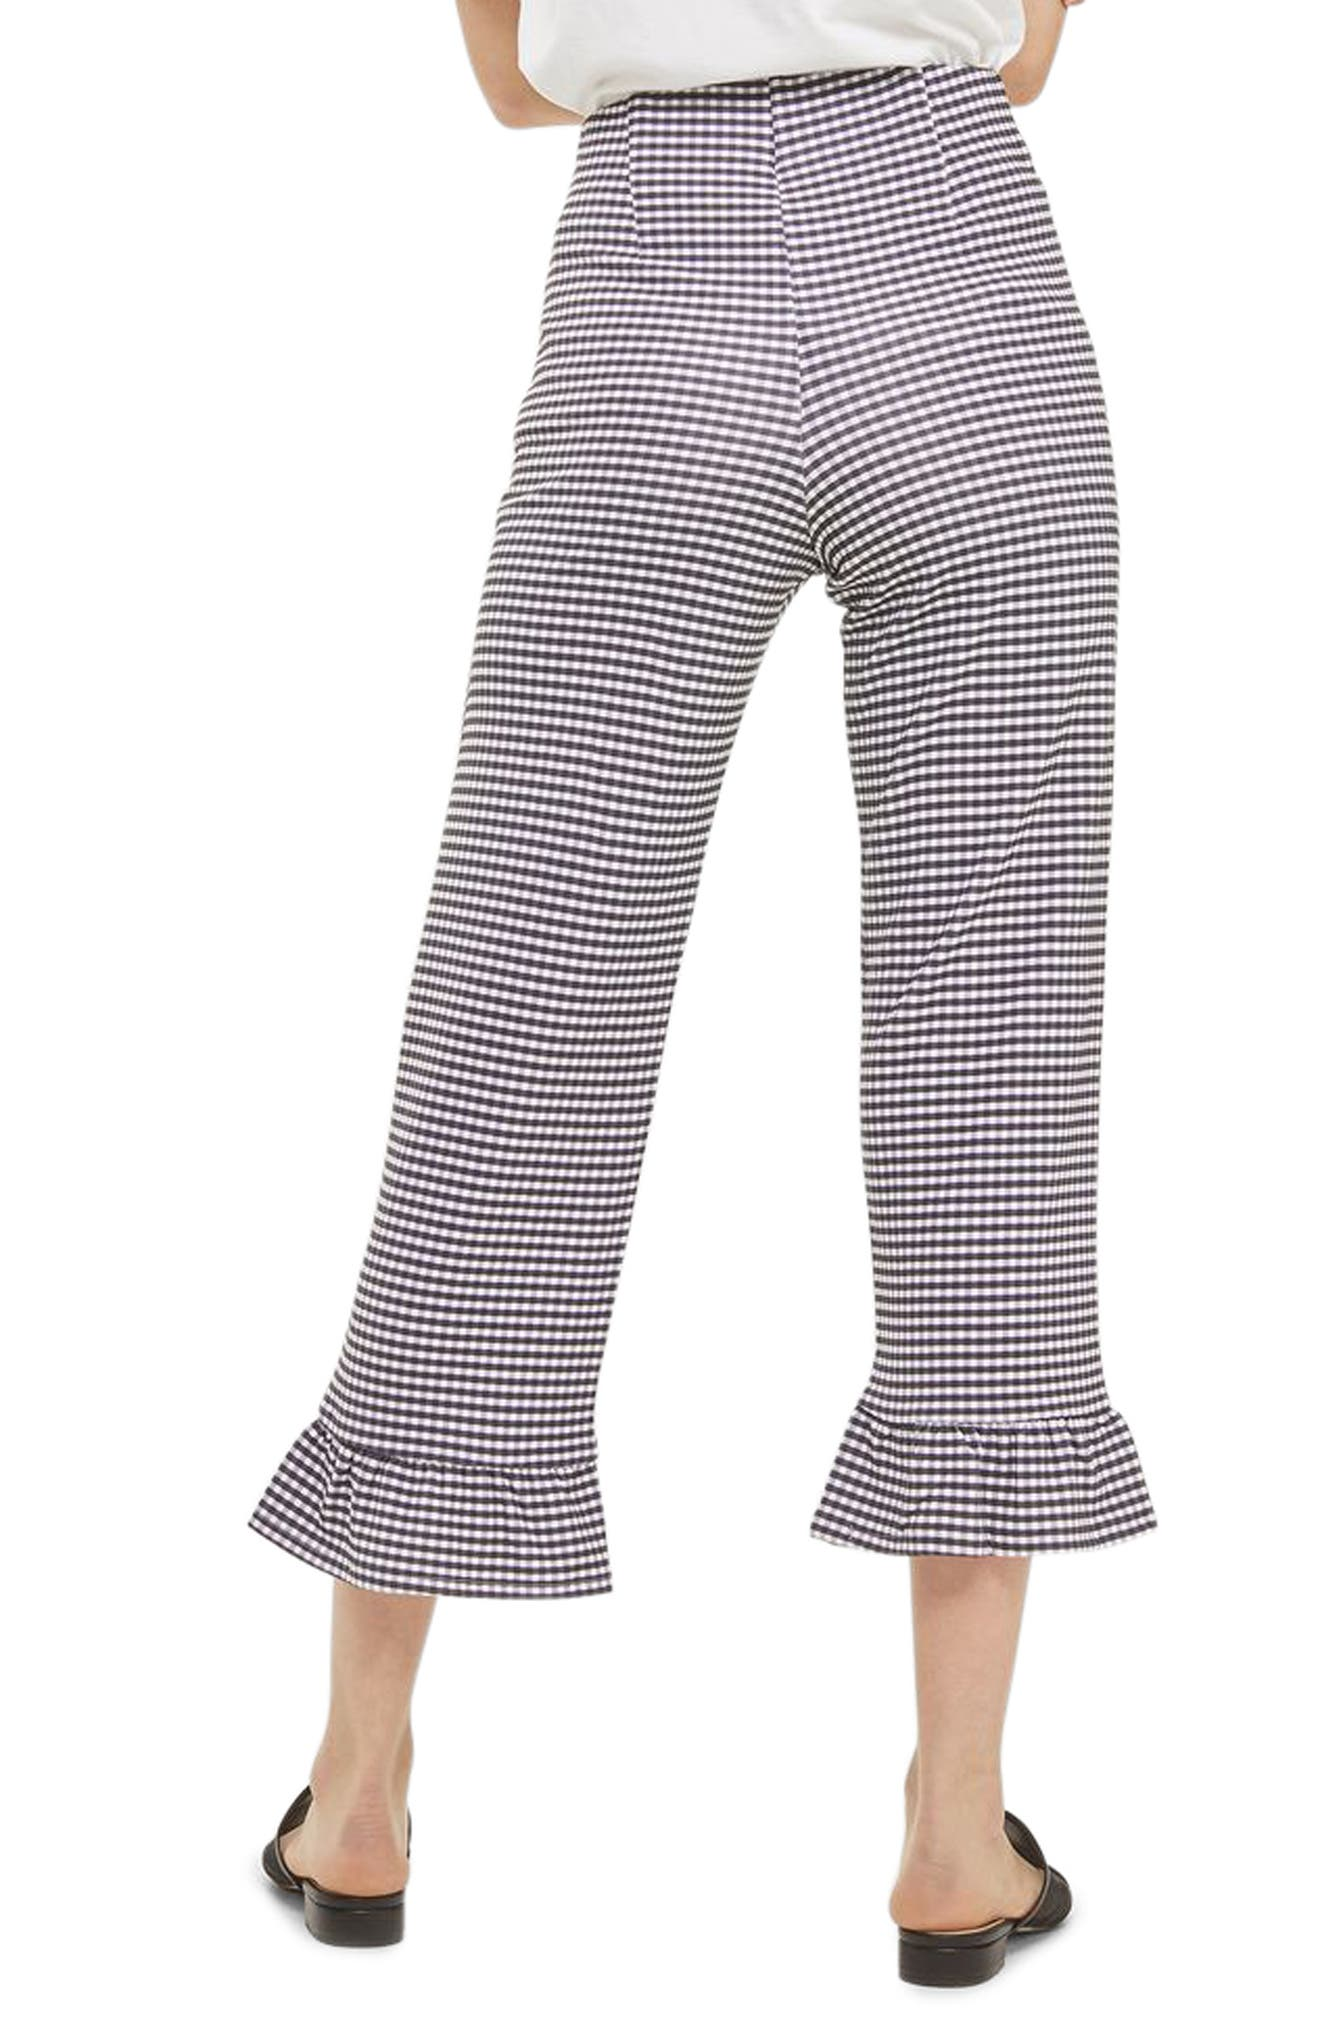 Gingham Ruffle Capri Trousers,                             Alternate thumbnail 2, color,